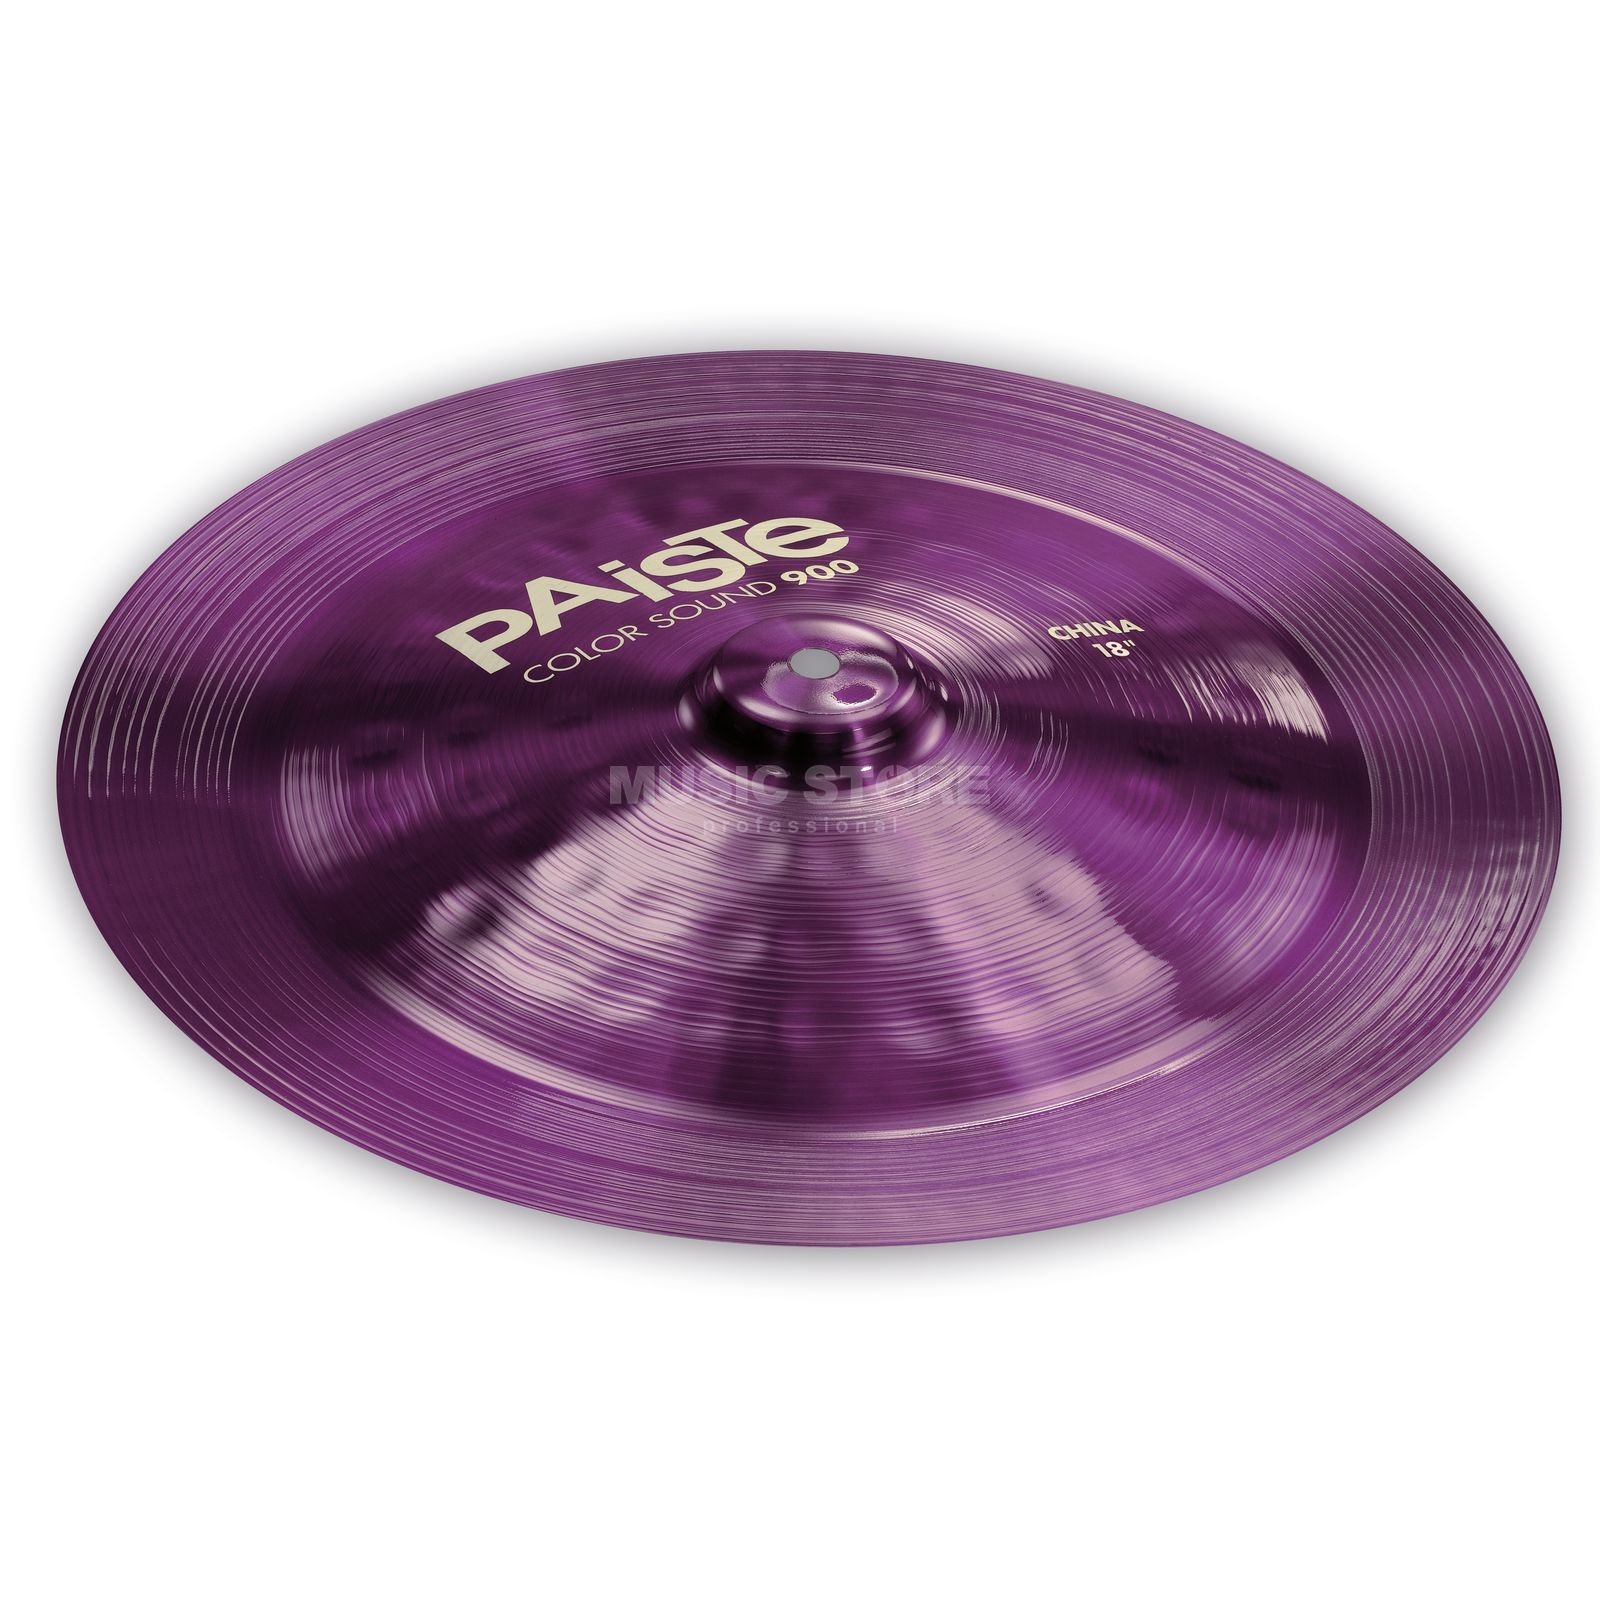 "Paiste CS 900 China 18"" Color Sound Purple Produktbild"